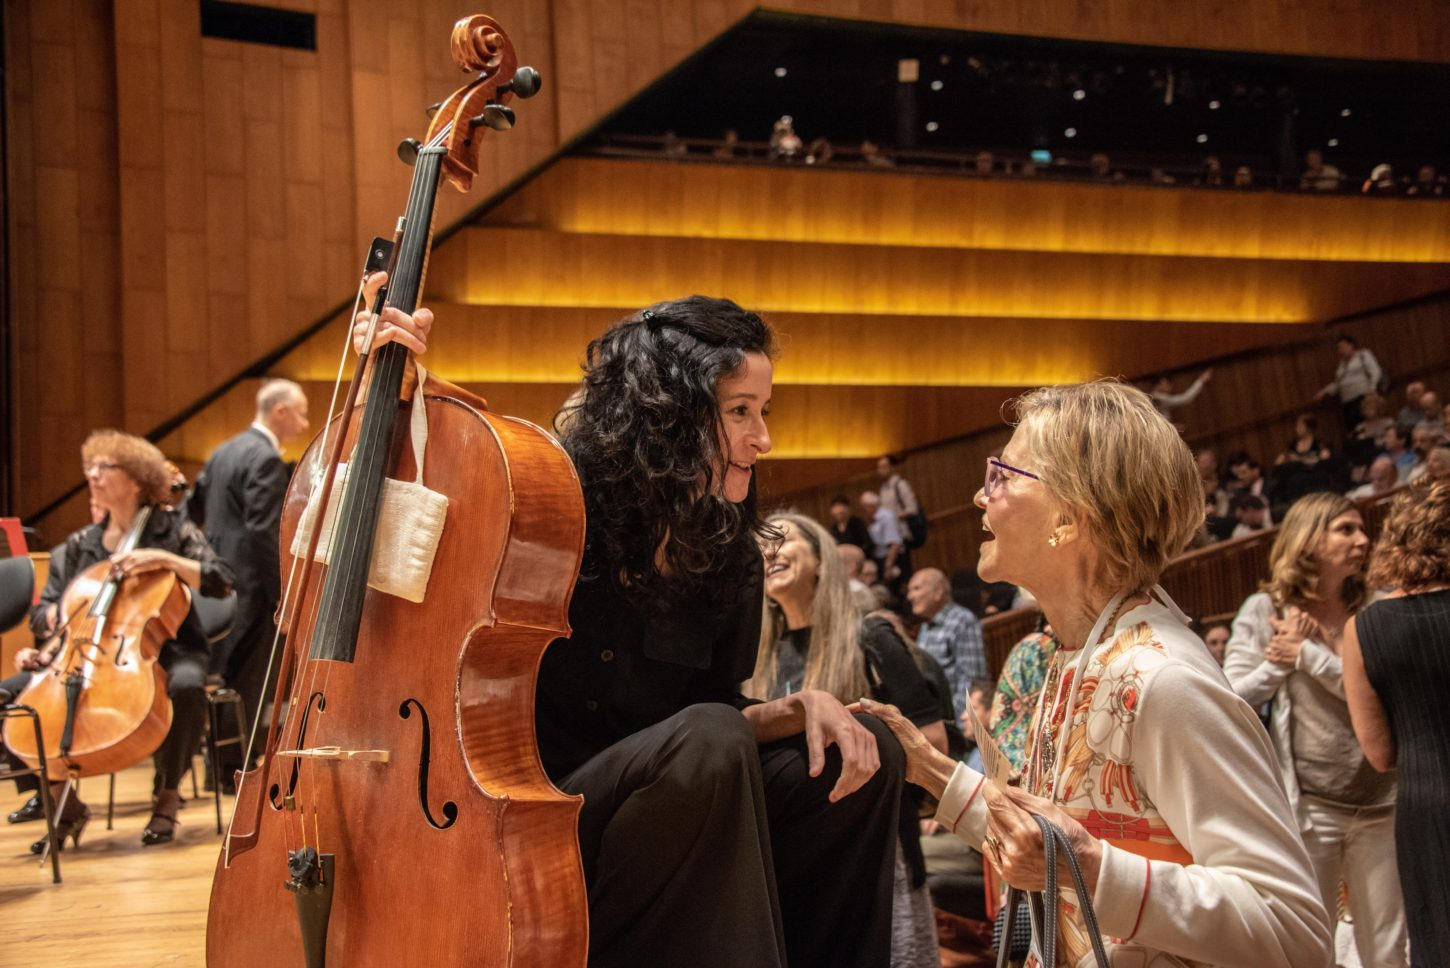 Connie Smukler chats with Philadelphia Orchestra cellist Yumi Kendall prior  to a performance at the Charles Bronfman Auditorium in Tel Aviv. f9d70f7f53f